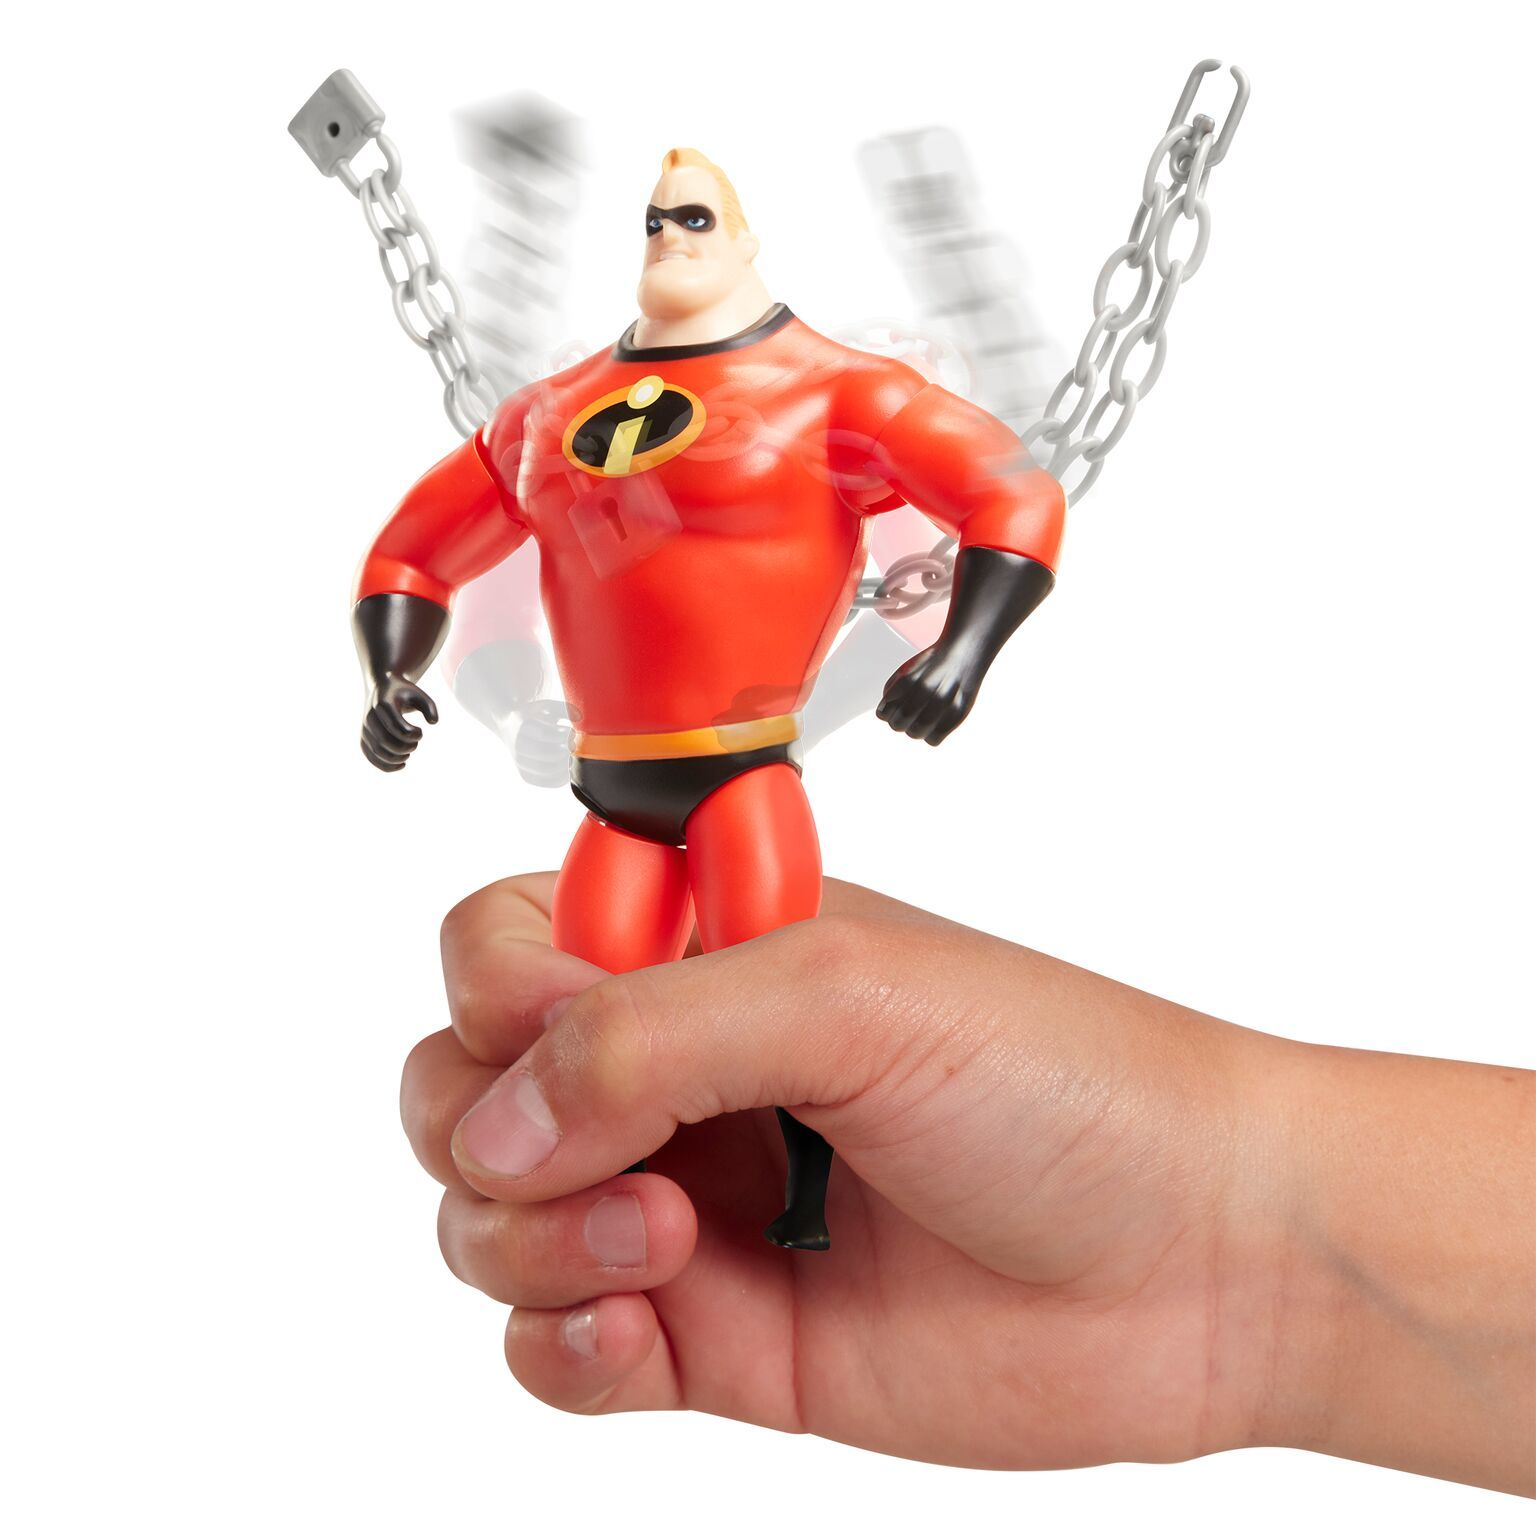 Incredibles 2: Chain Bustin' Mr Incredible - 15cm Feature Figure image